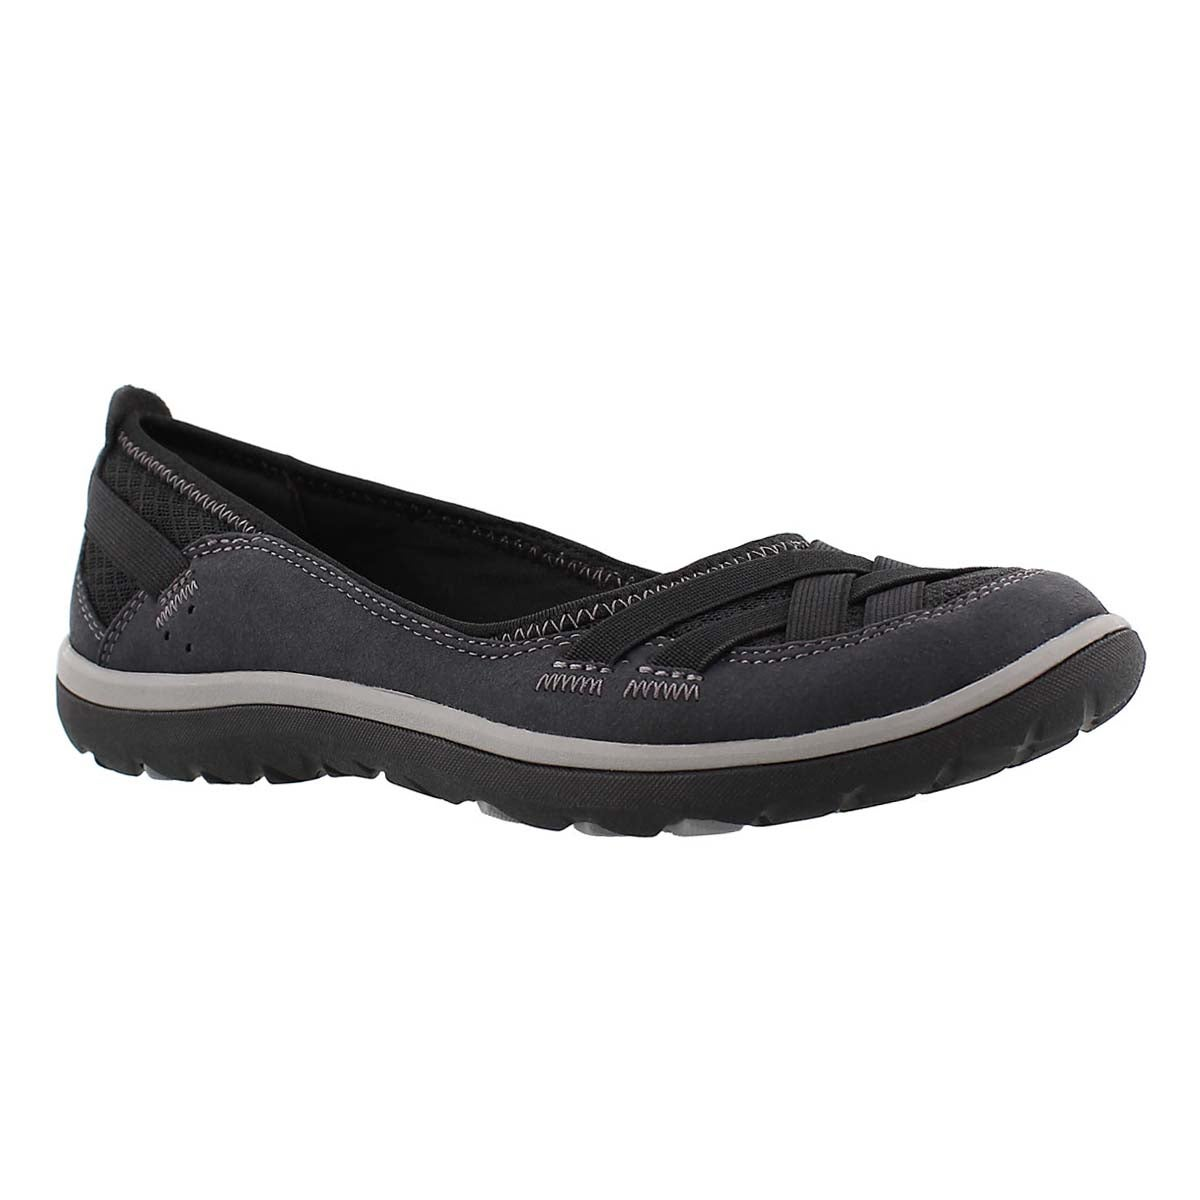 Women's ARIA PUMP black slip on casual shoes